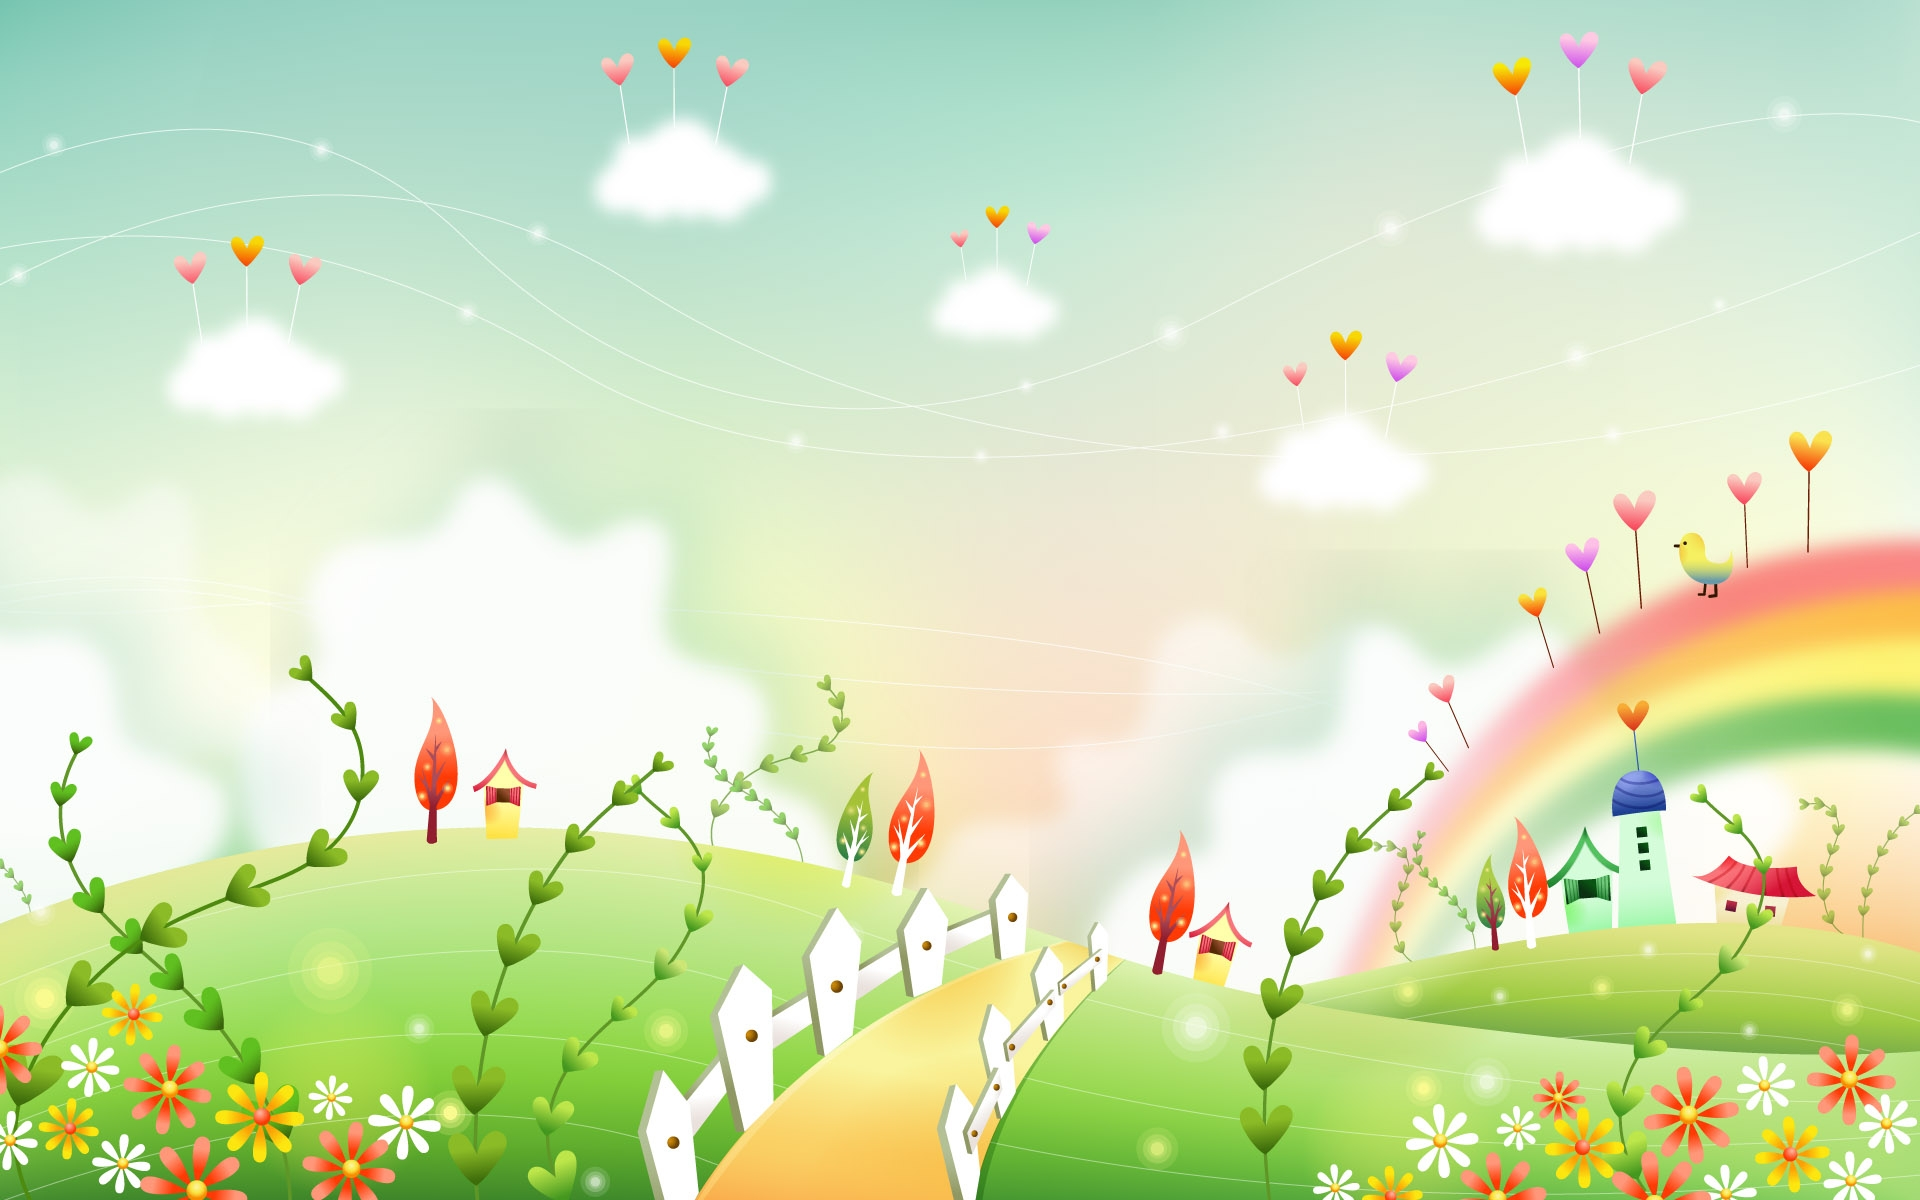 Nature wallpaper clipart.